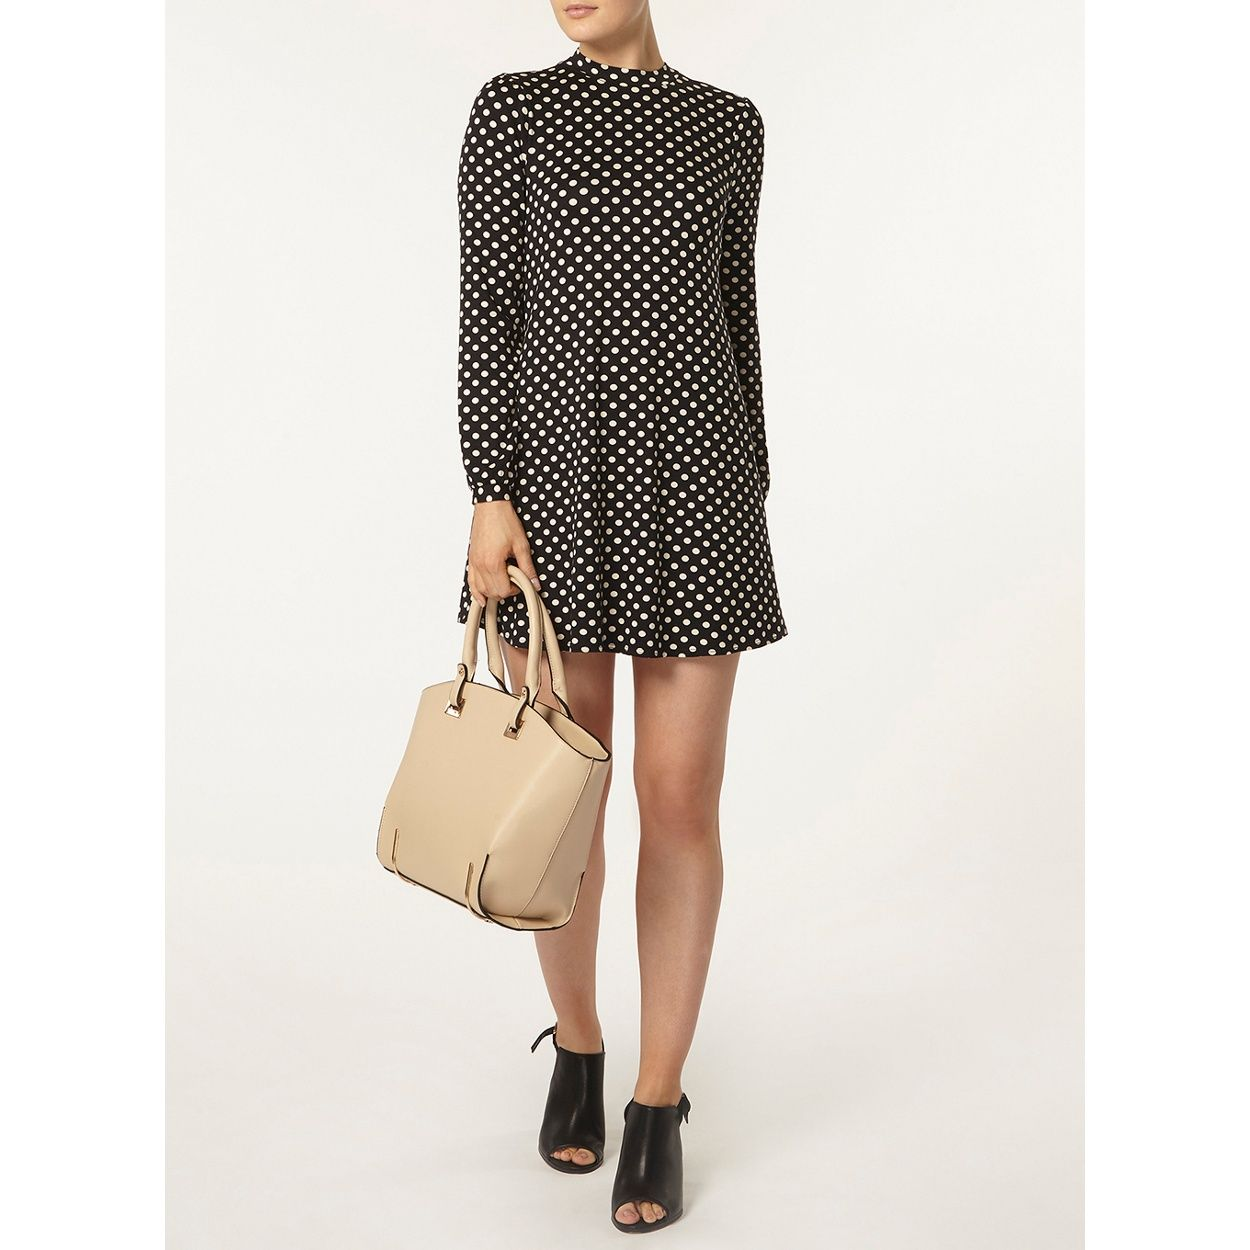 Nude and black spot swing dress with long sleeve.